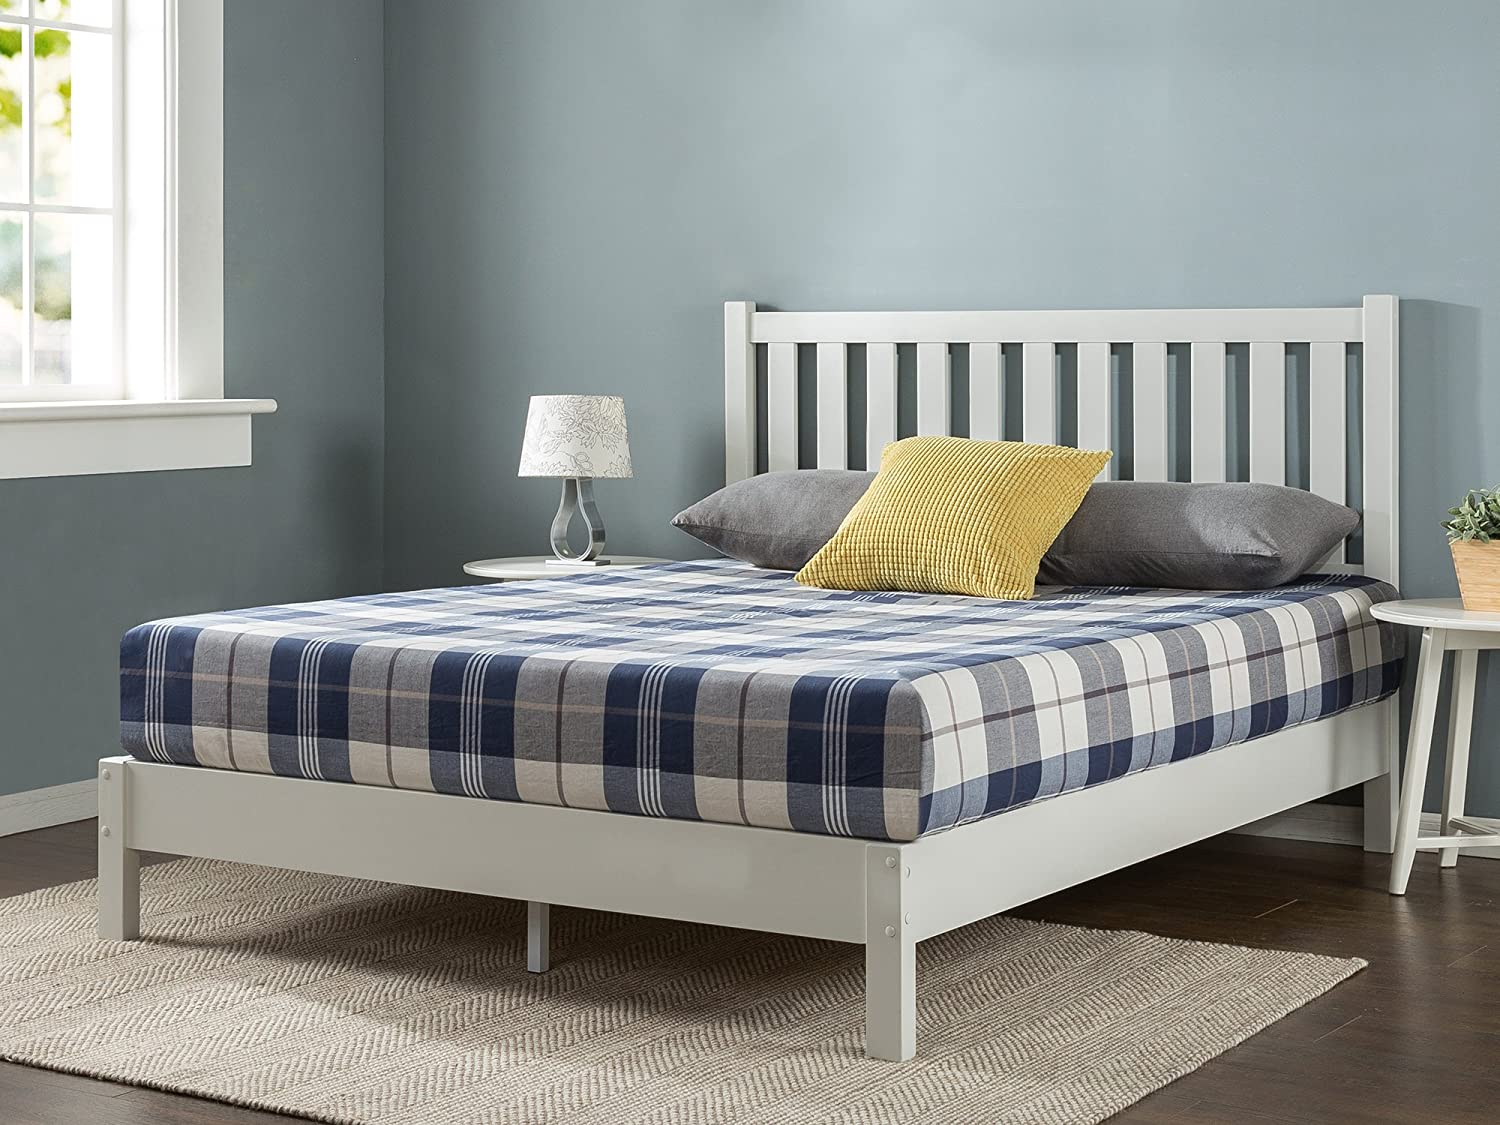 ZINUS Wen Wood Deluxe Platform High material wholesale Solid with Bed Frame Headboard